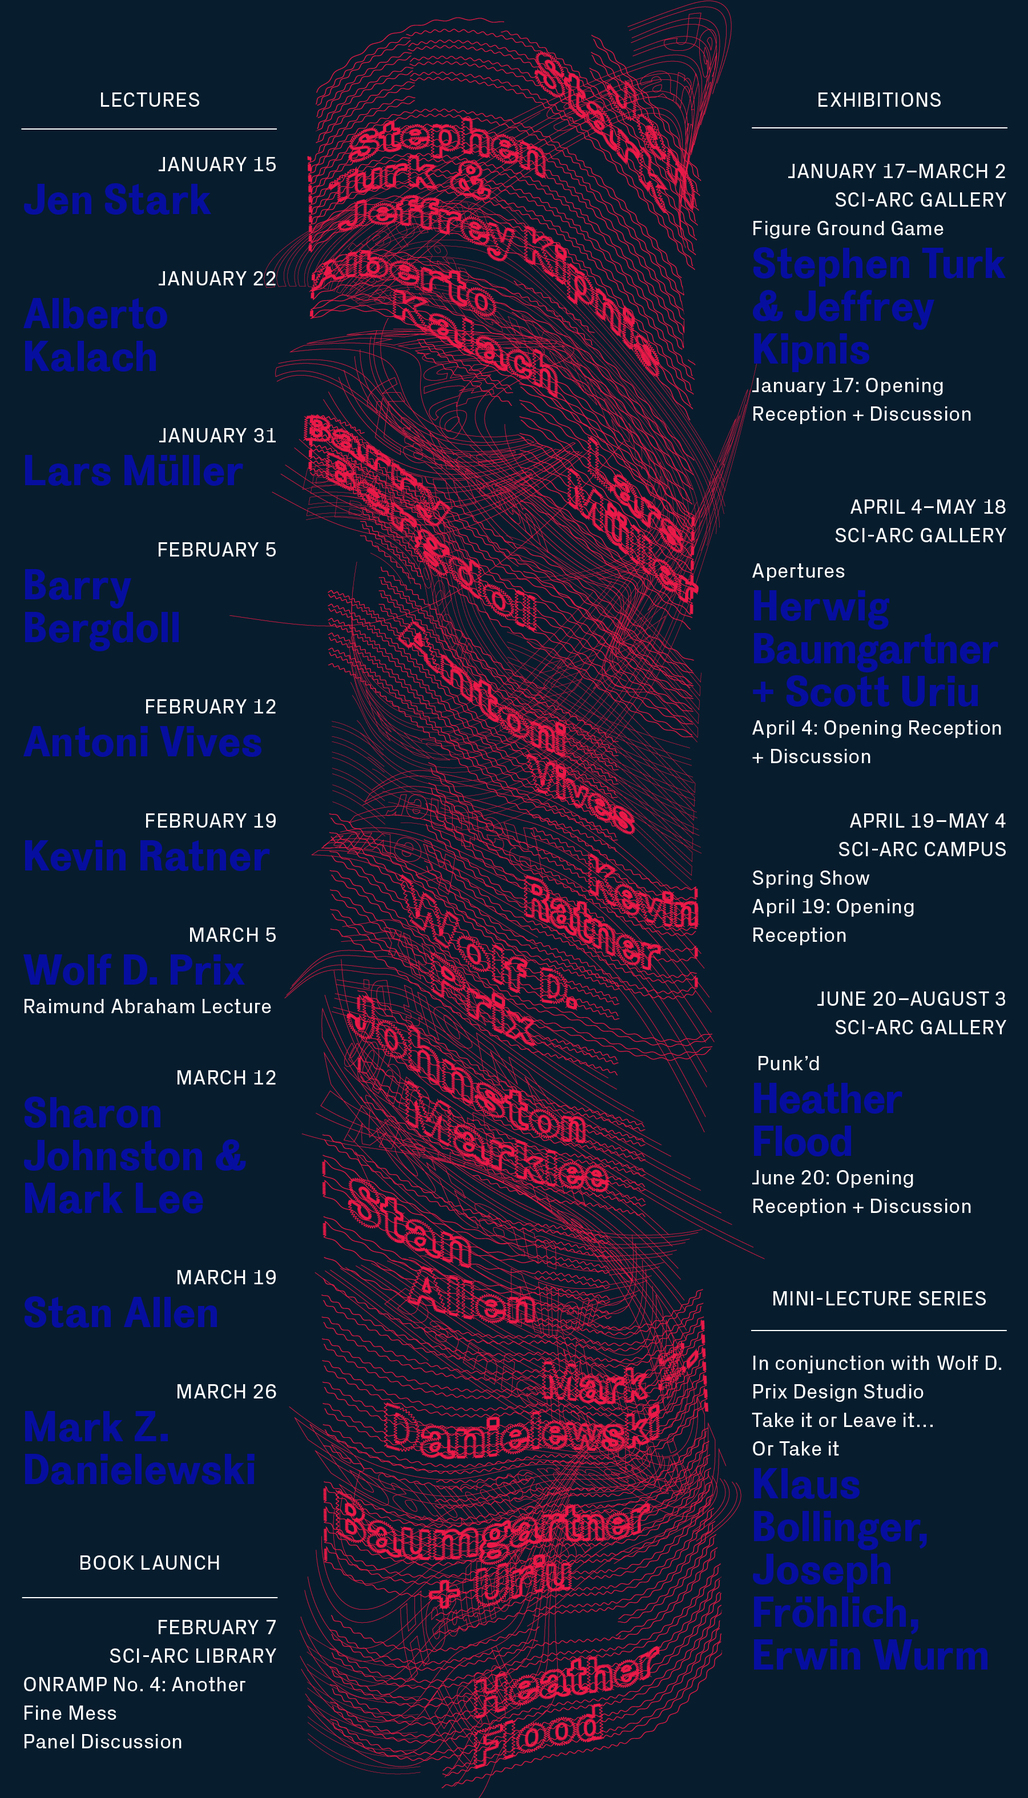 SCI-Arcs Spring 14 Lecture Events. Image courtesy of SCI-Arc.